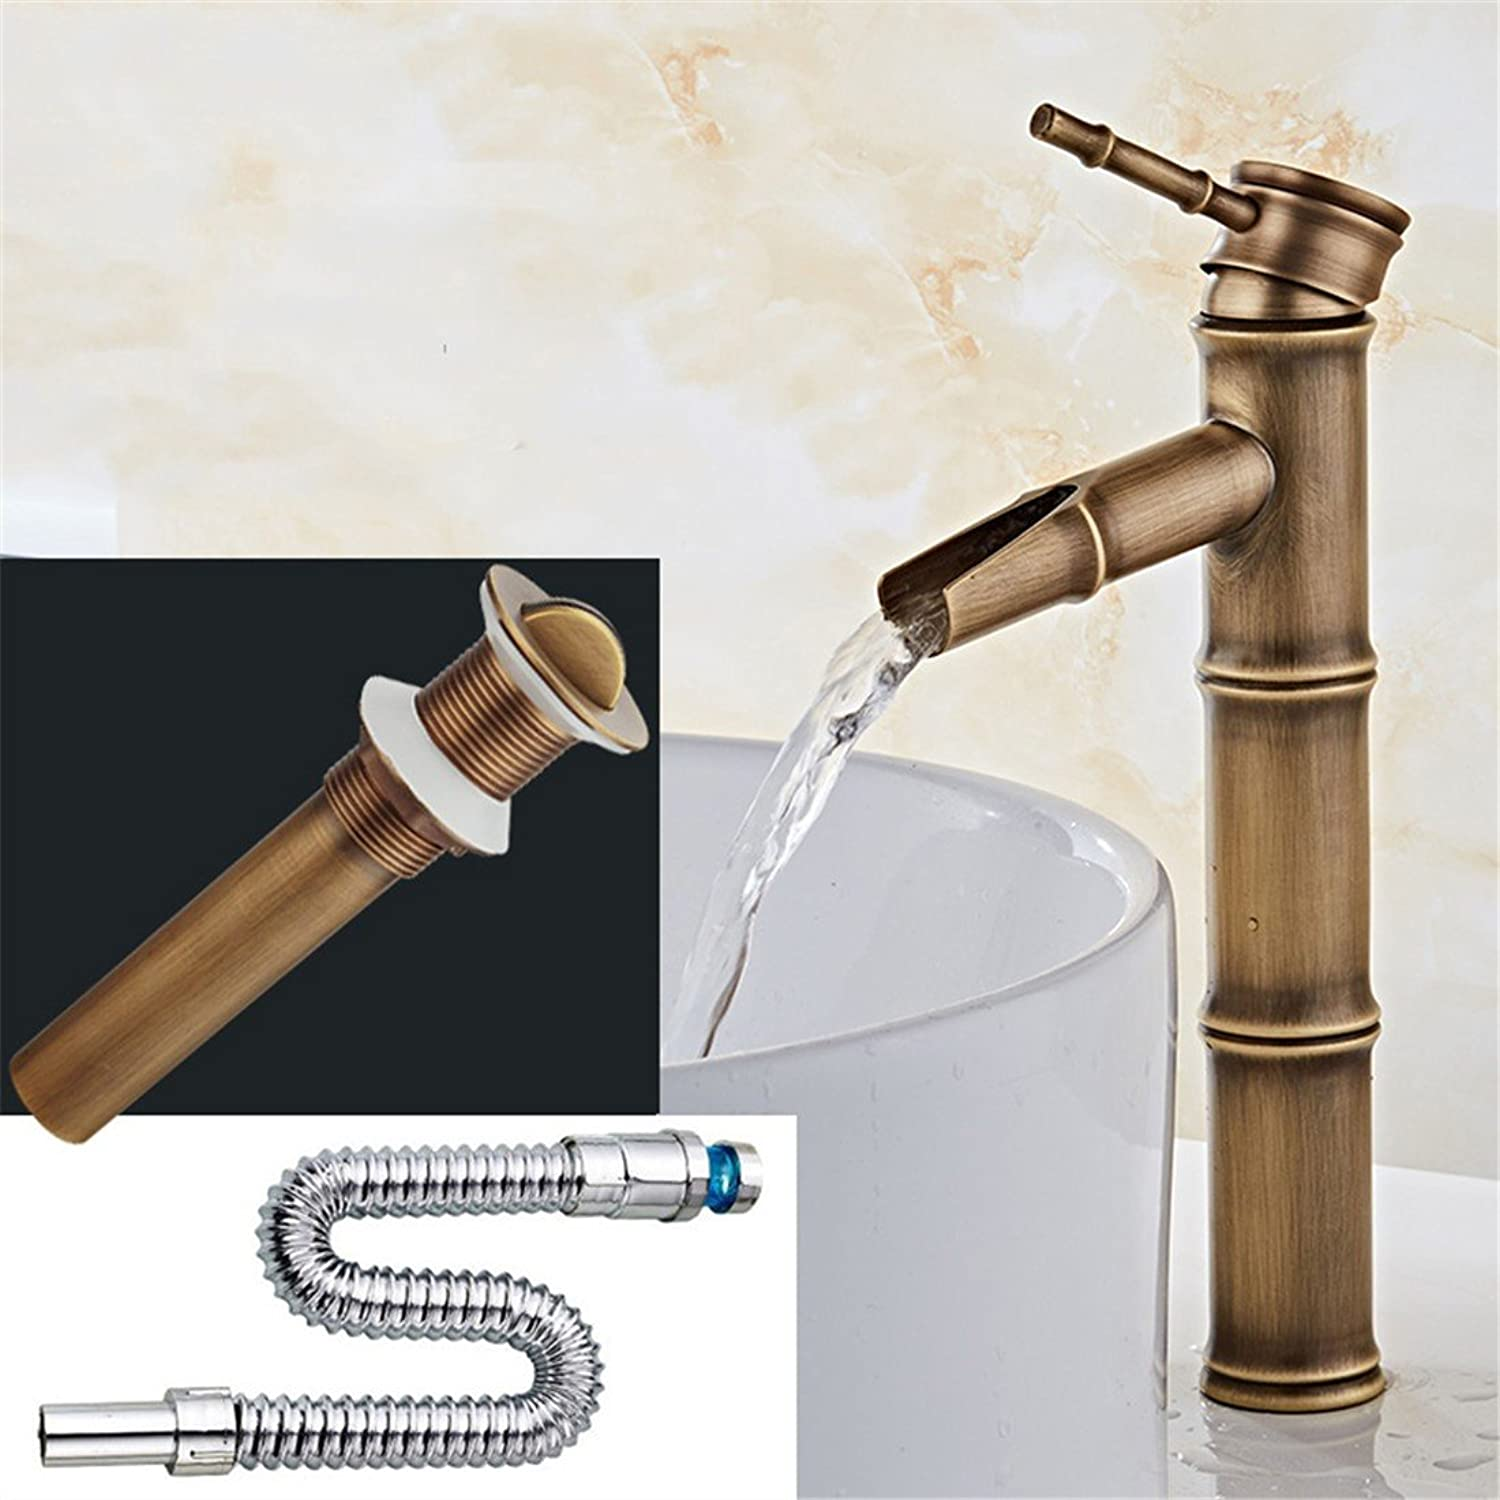 All copper antique faucet hot and cold basin faucet European faucet bathroom sink faucet, a hot and cold full Set 2